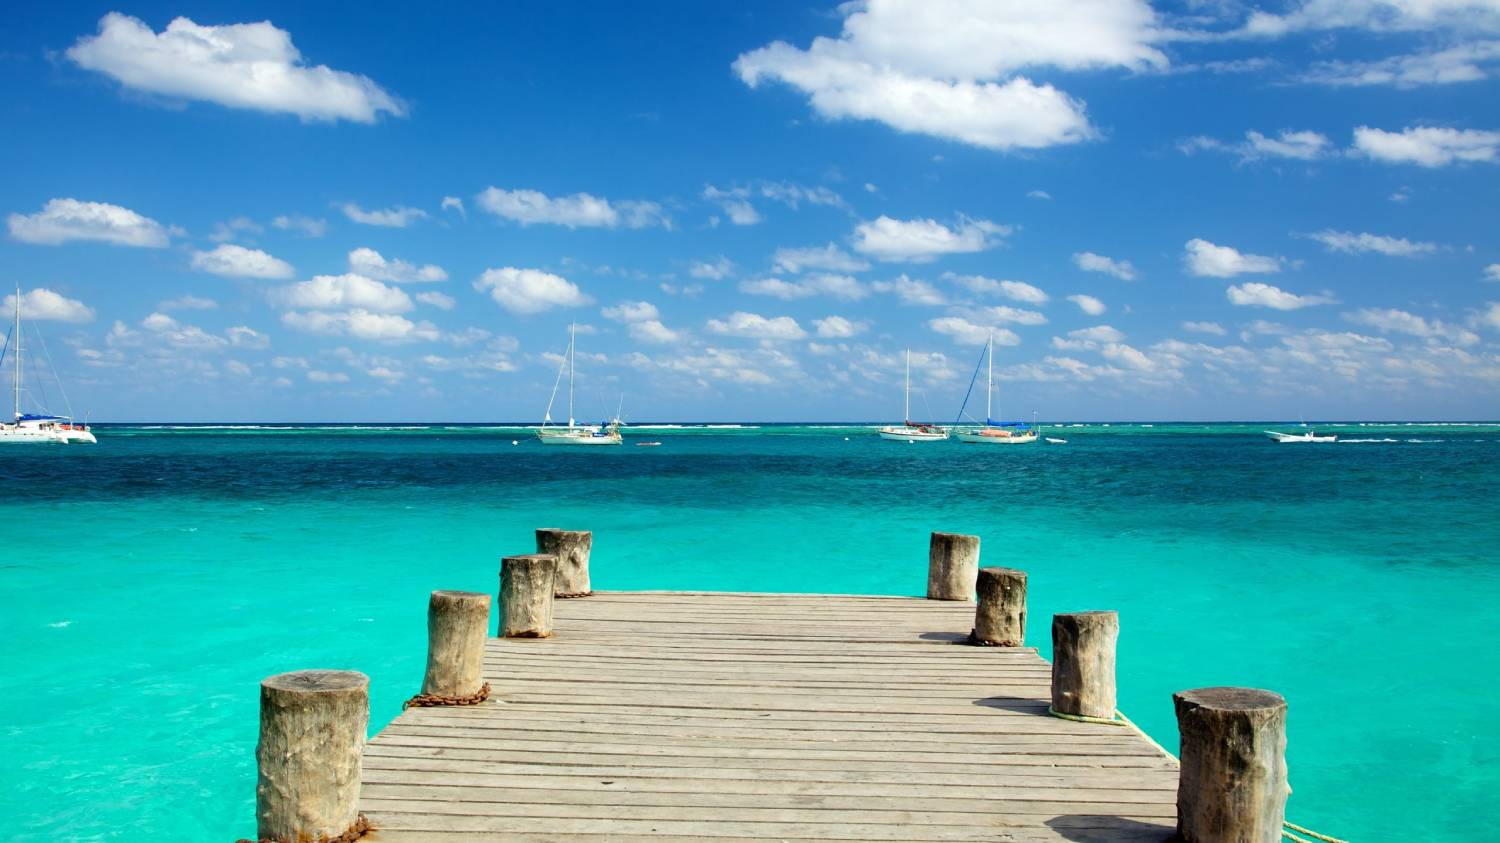 Puerto Morelos - Things To Do In Cancun